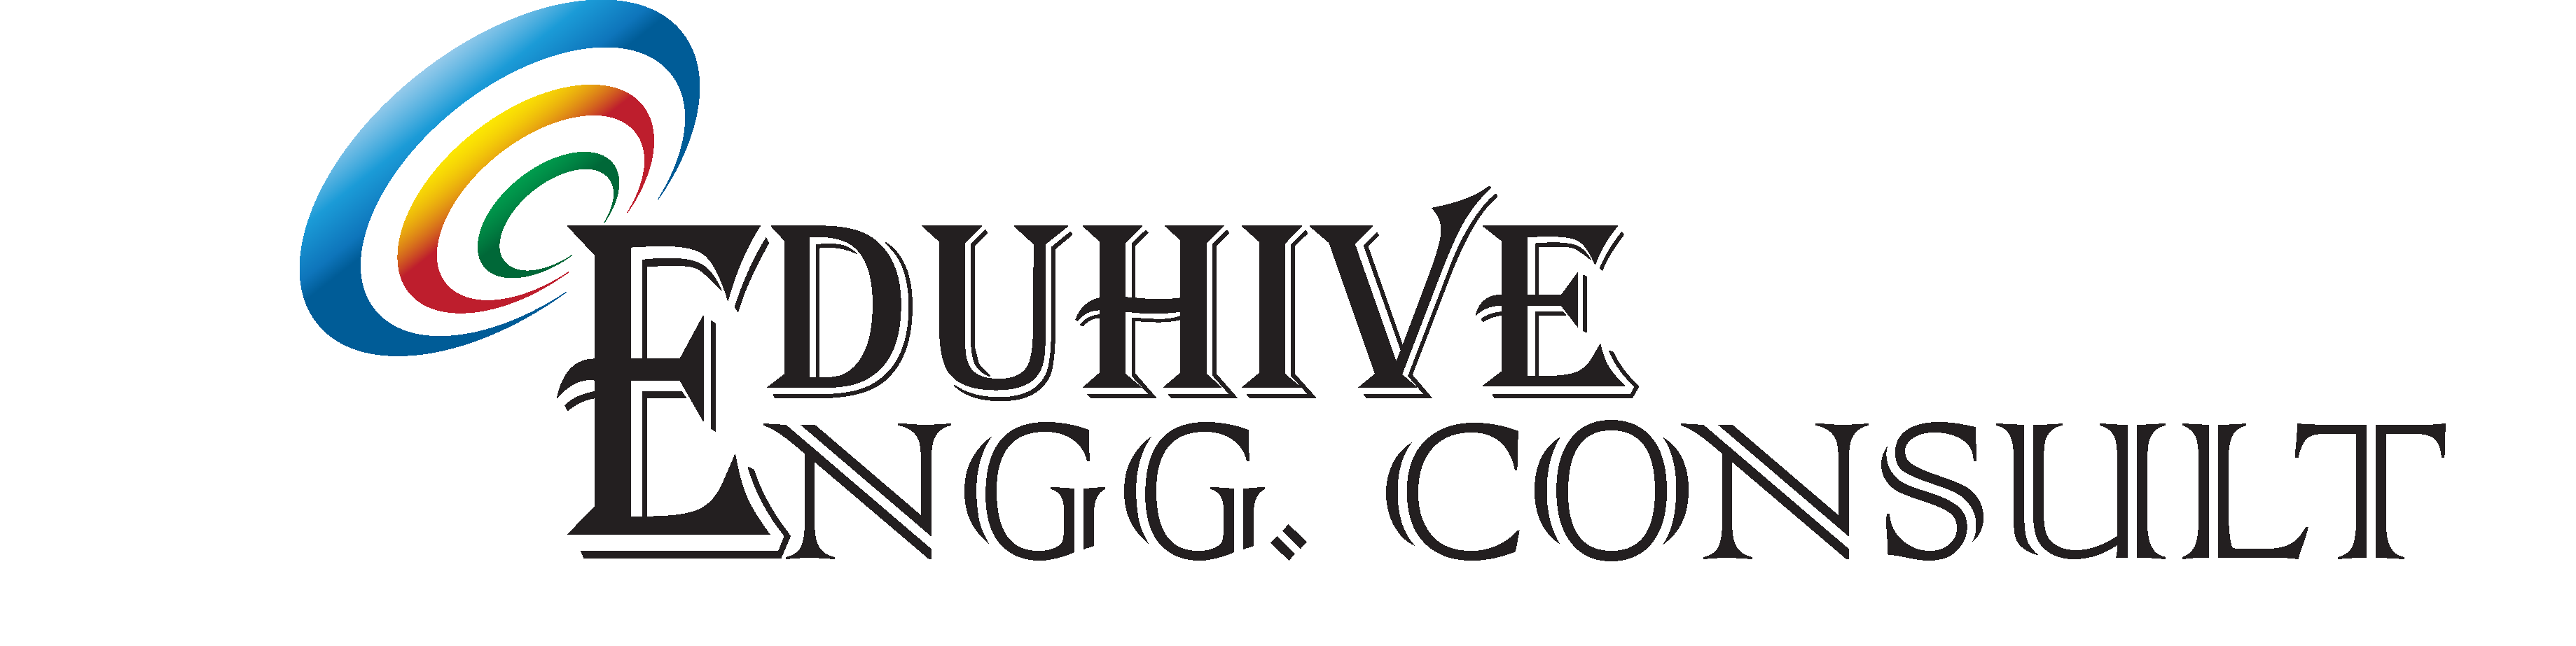 Eduhive Engineering Consultancy in dehradun